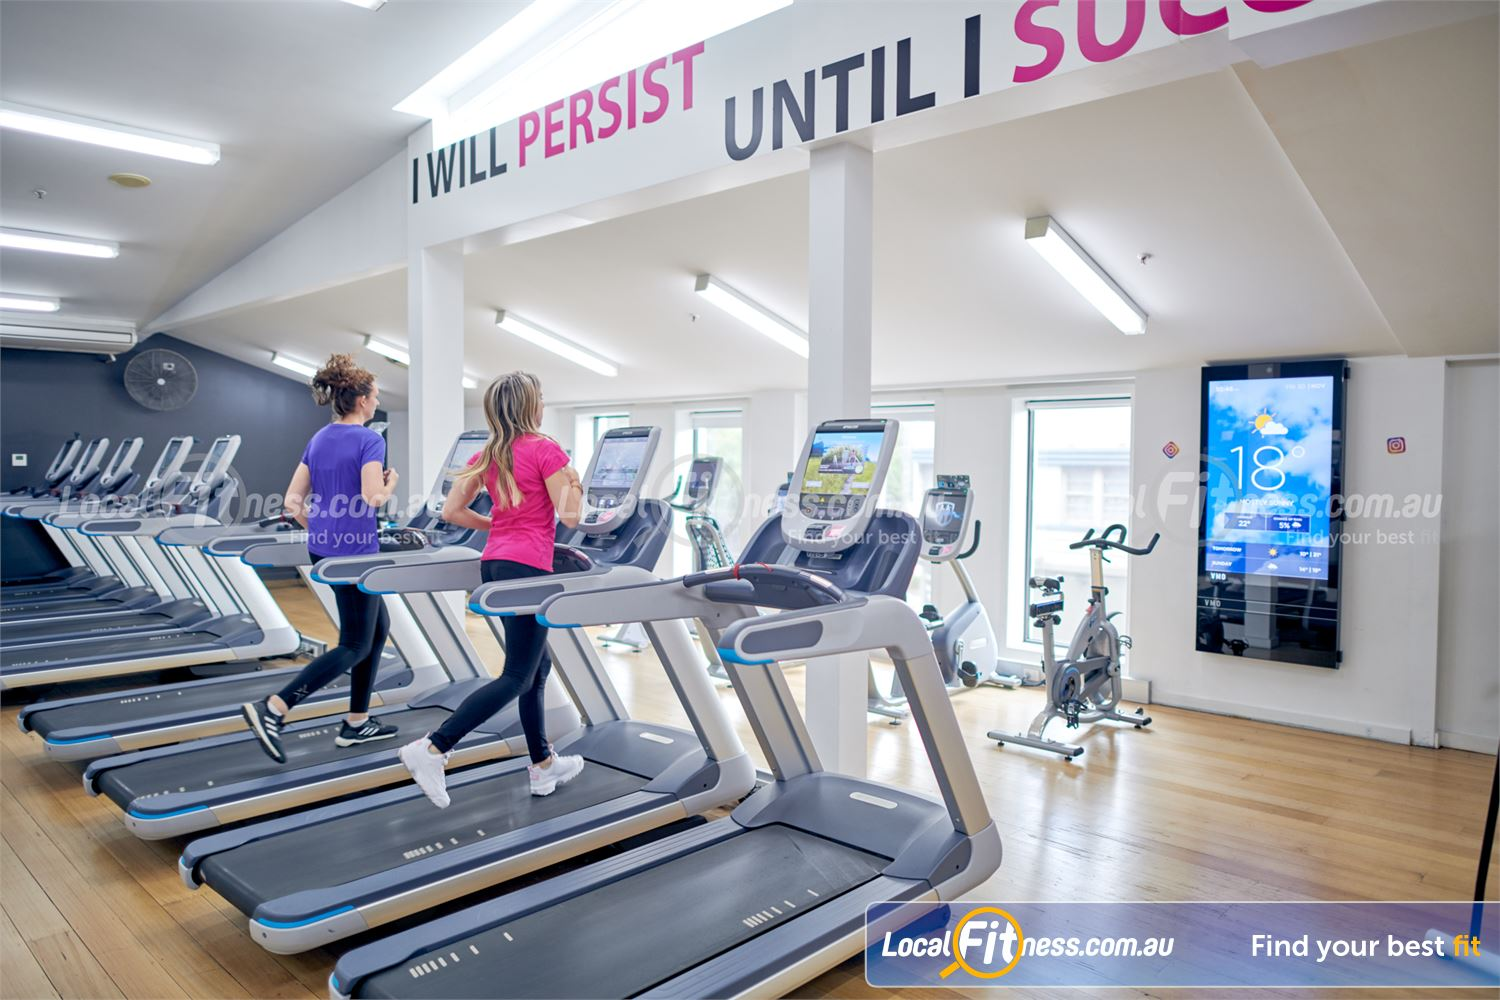 Fernwood Fitness Camberwell State of the art cardio with built-in personal entertainment screens.